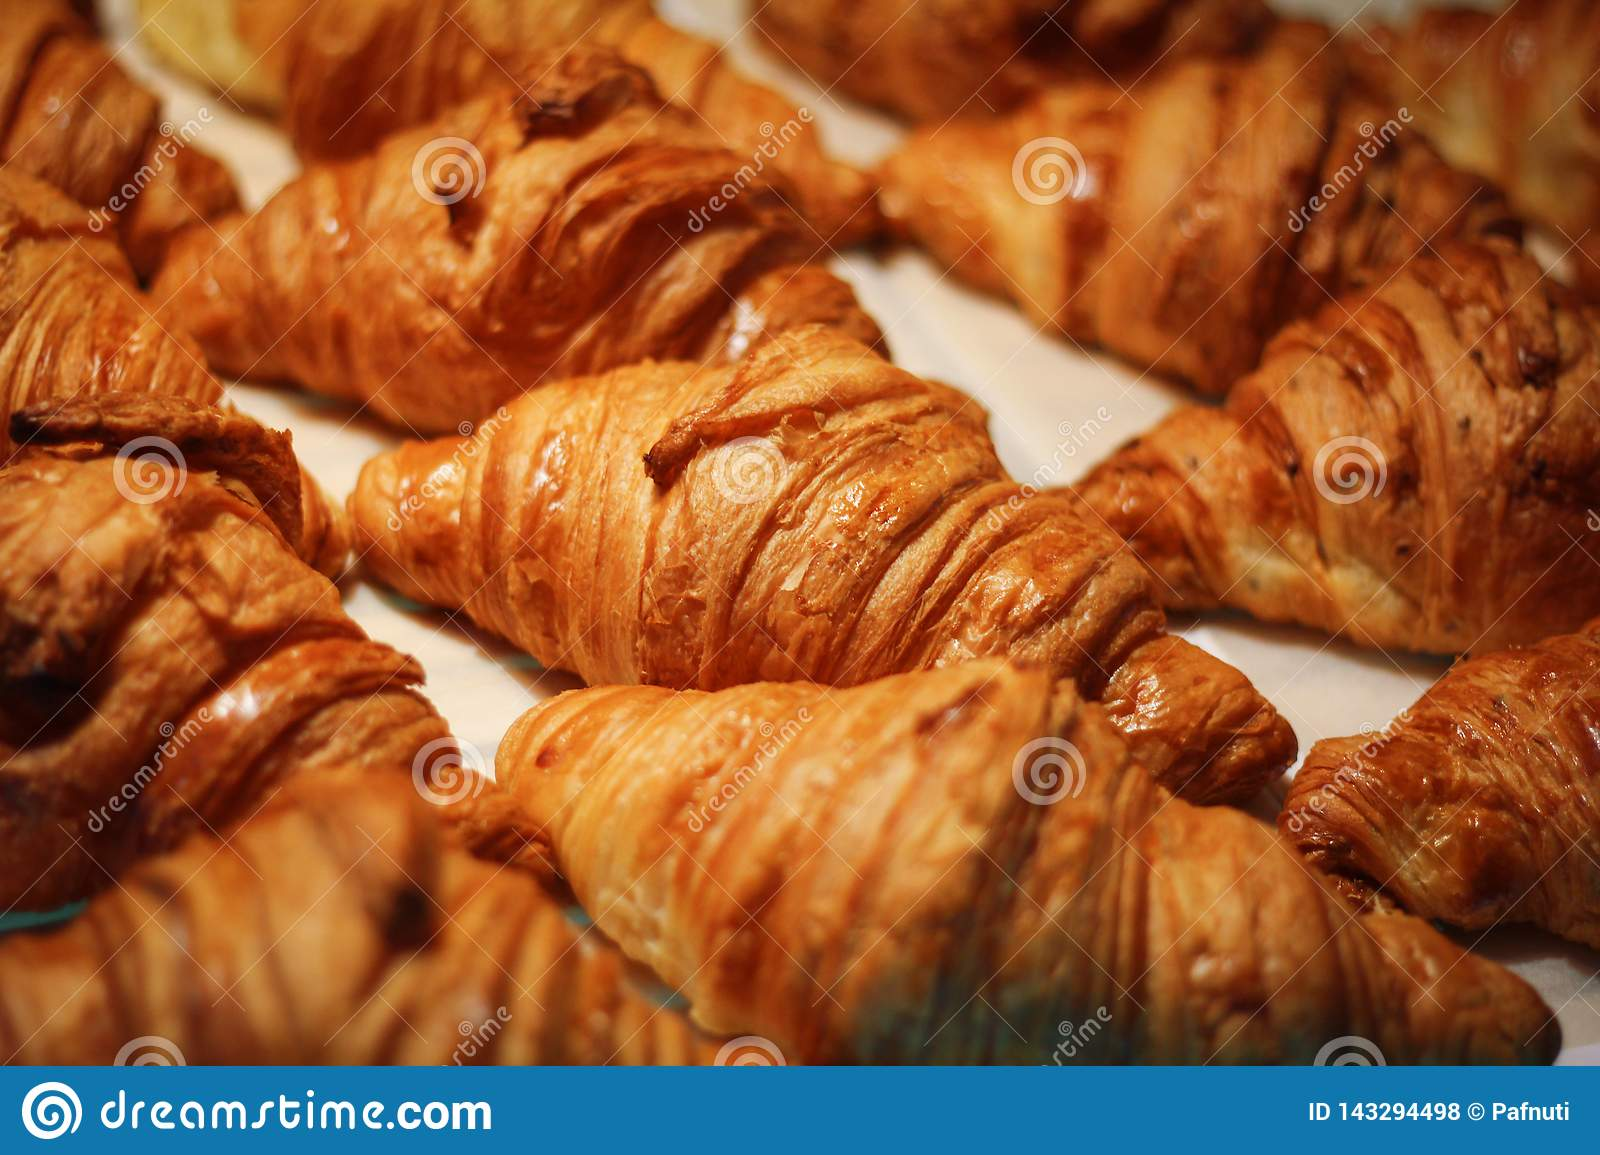 Assortment of delicious and chocolate croissants made by pastry chef.